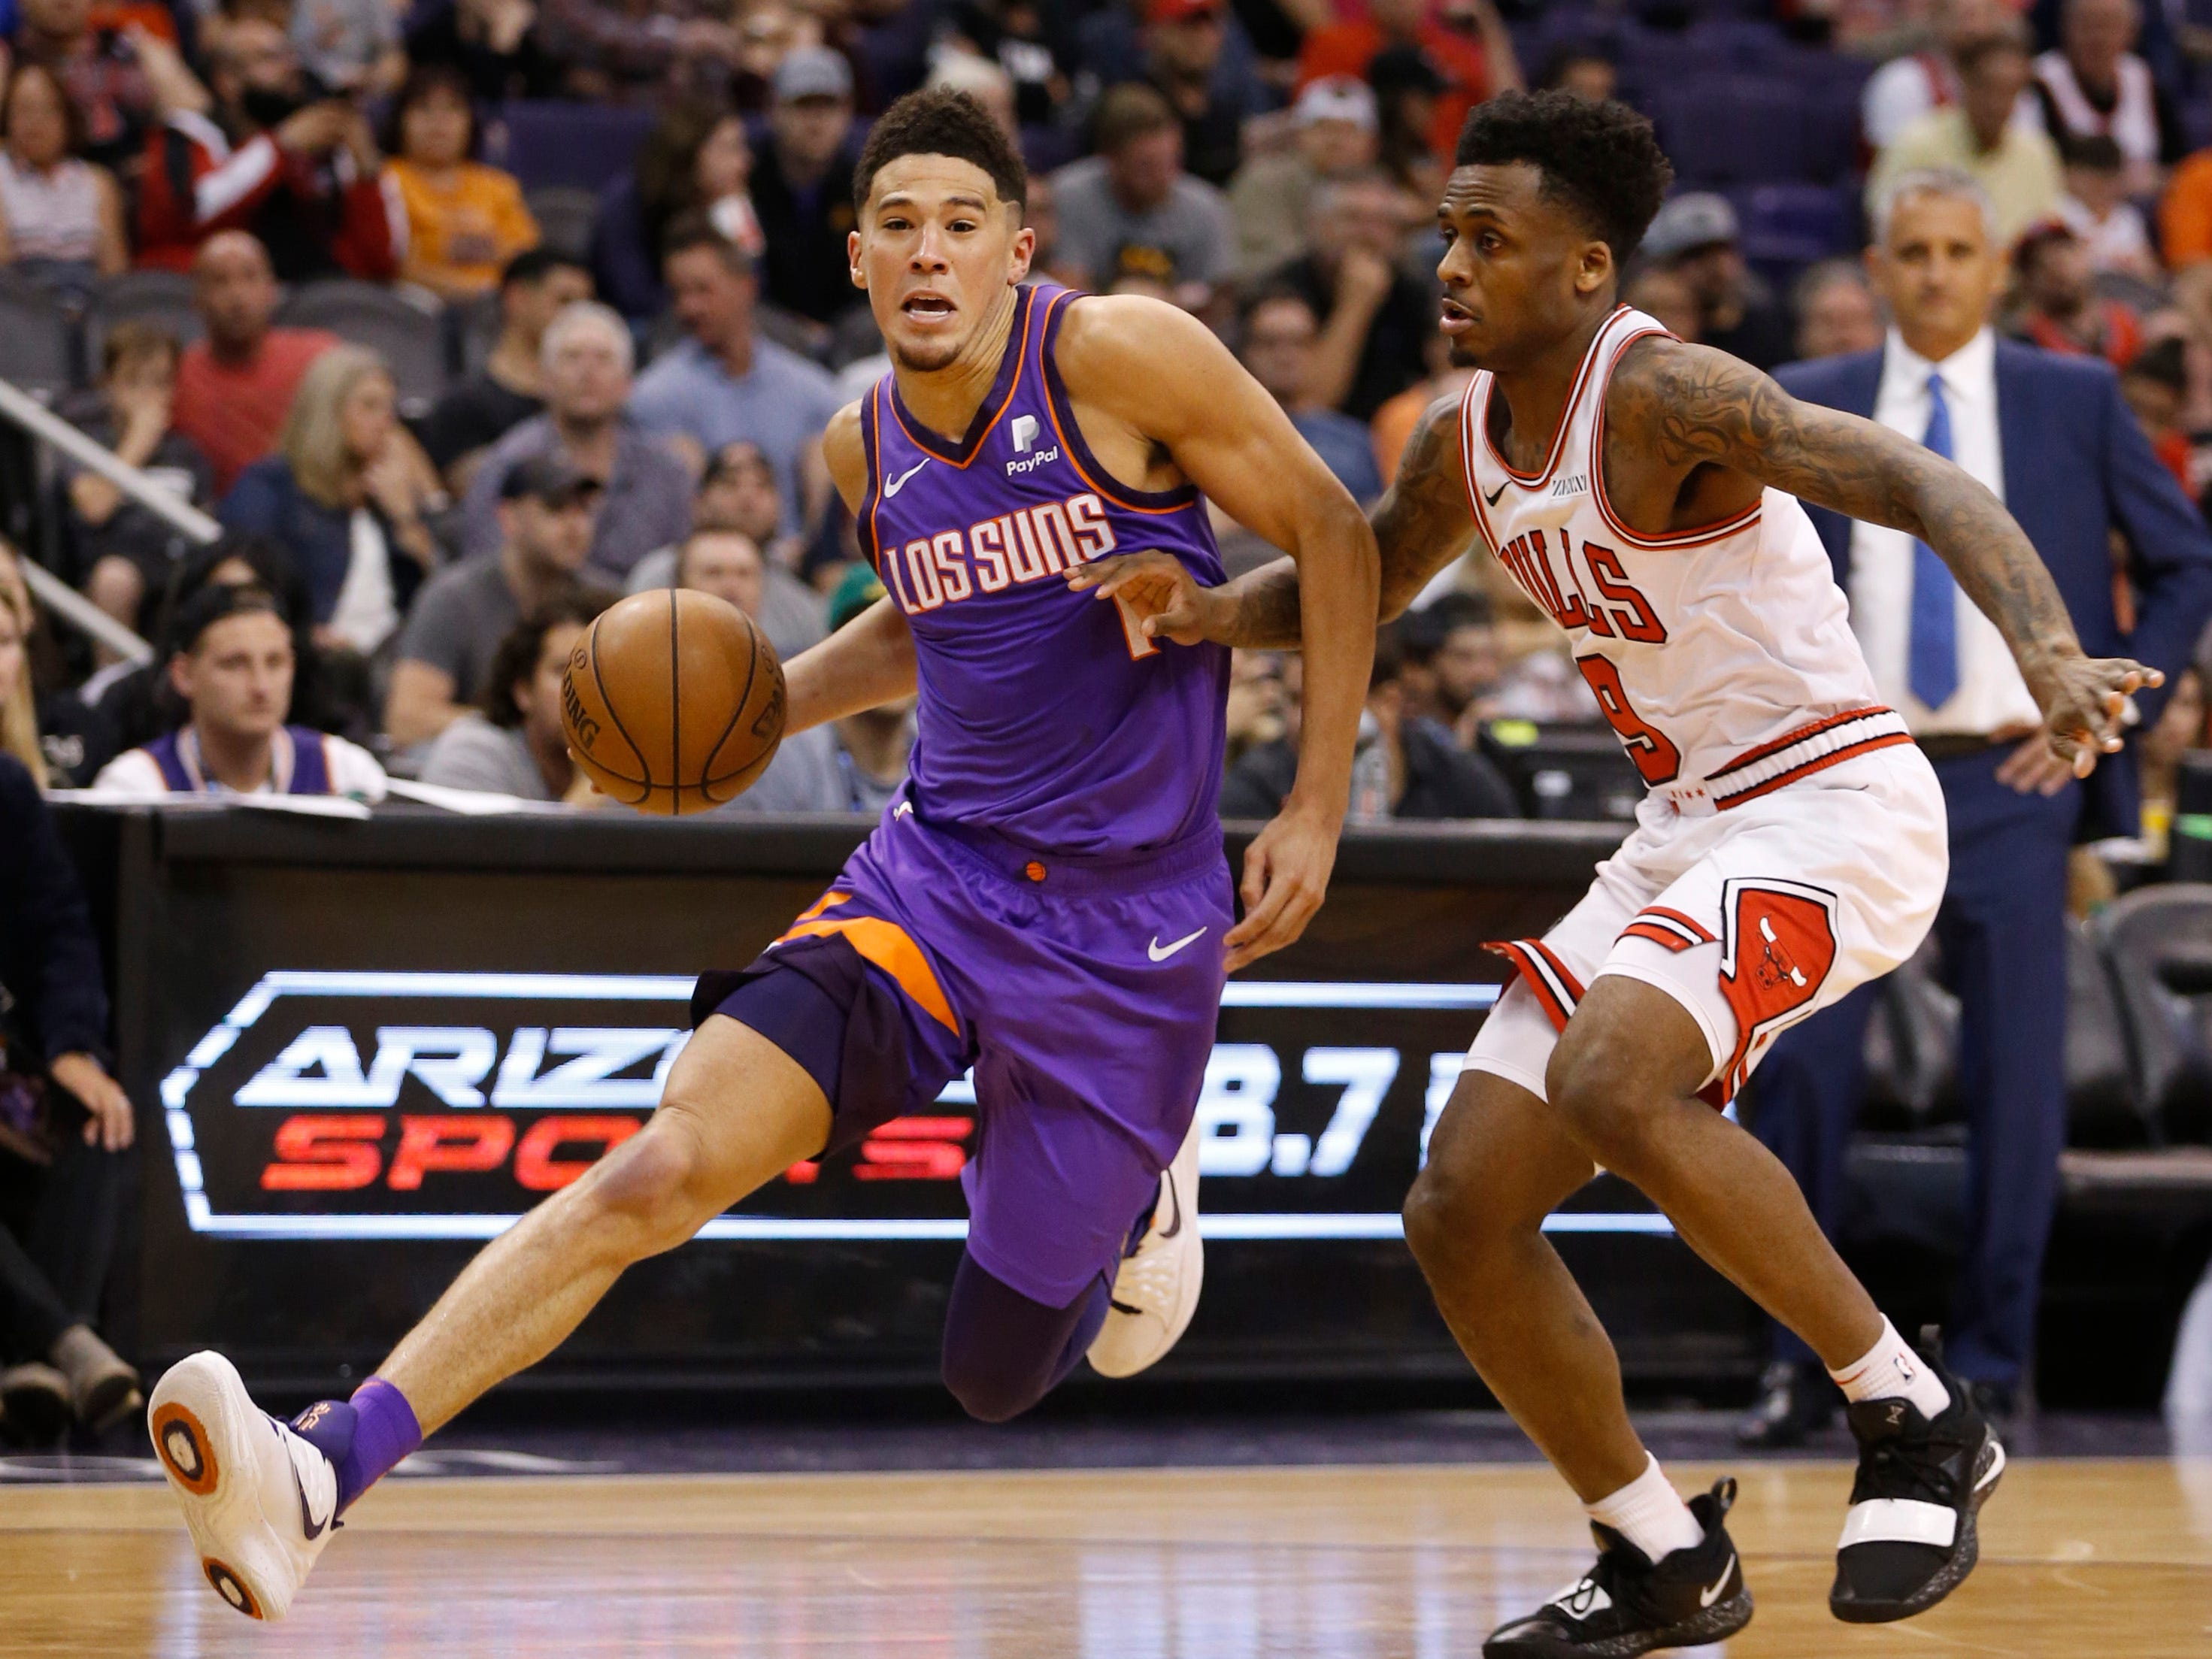 Suns' Devin Booker (1) drives past Bulls' Antonio Blakeney during the second half at Talking Stick Resort Arena in Phoenix, Ariz. on March 18, 2019.